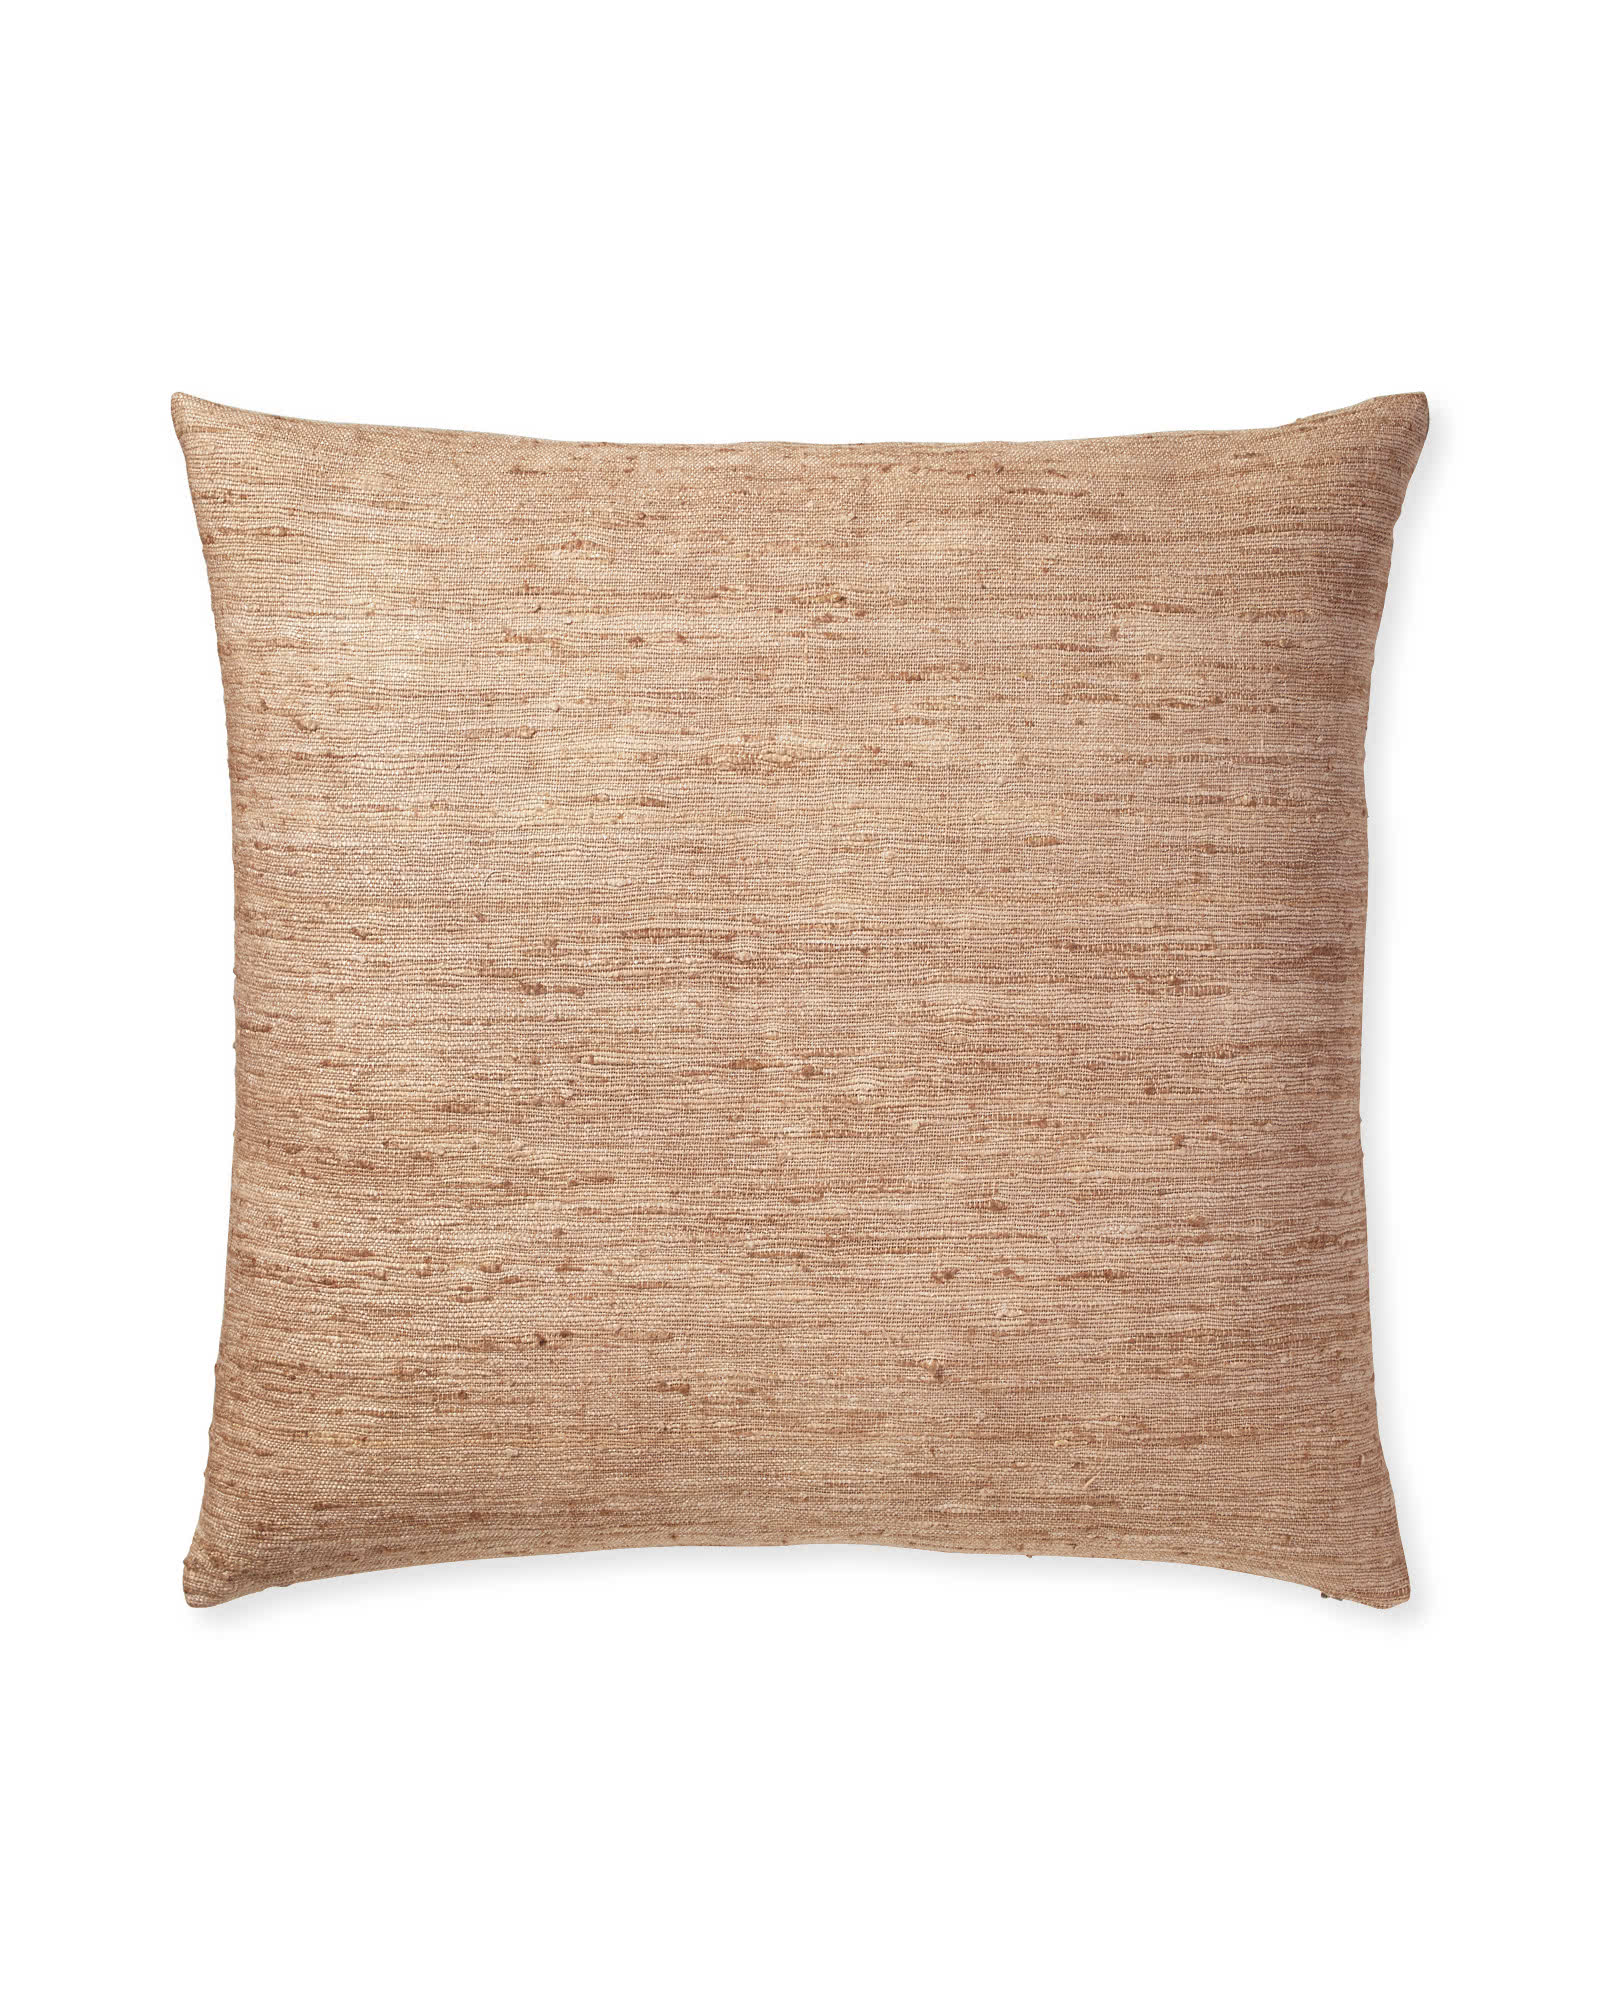 Provence Pillow Cover, Rose